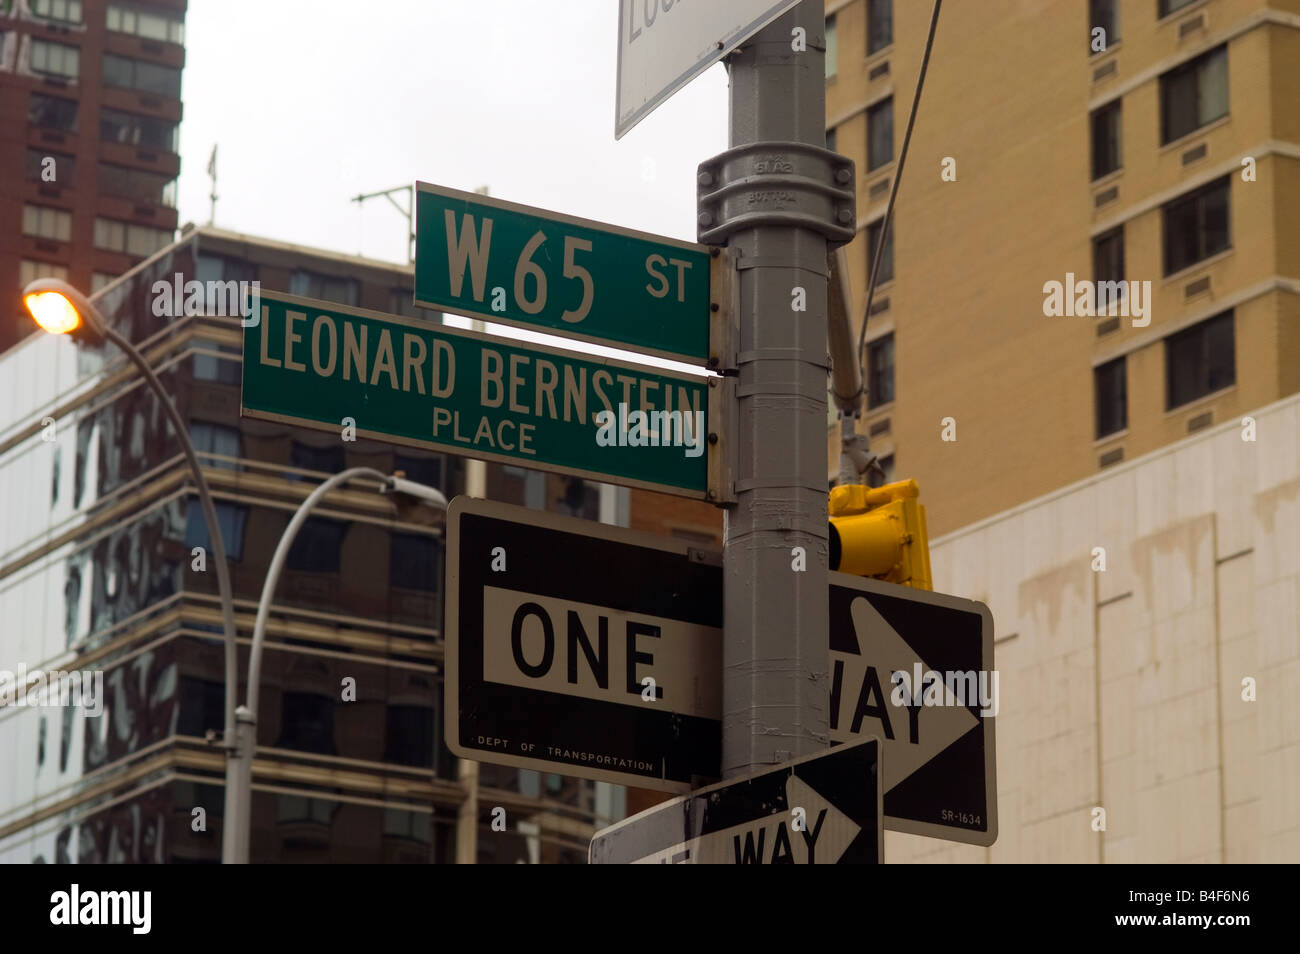 Leonard Bernstein Place West 65th Street Between And Broadway Amsterdam Avenue In New York